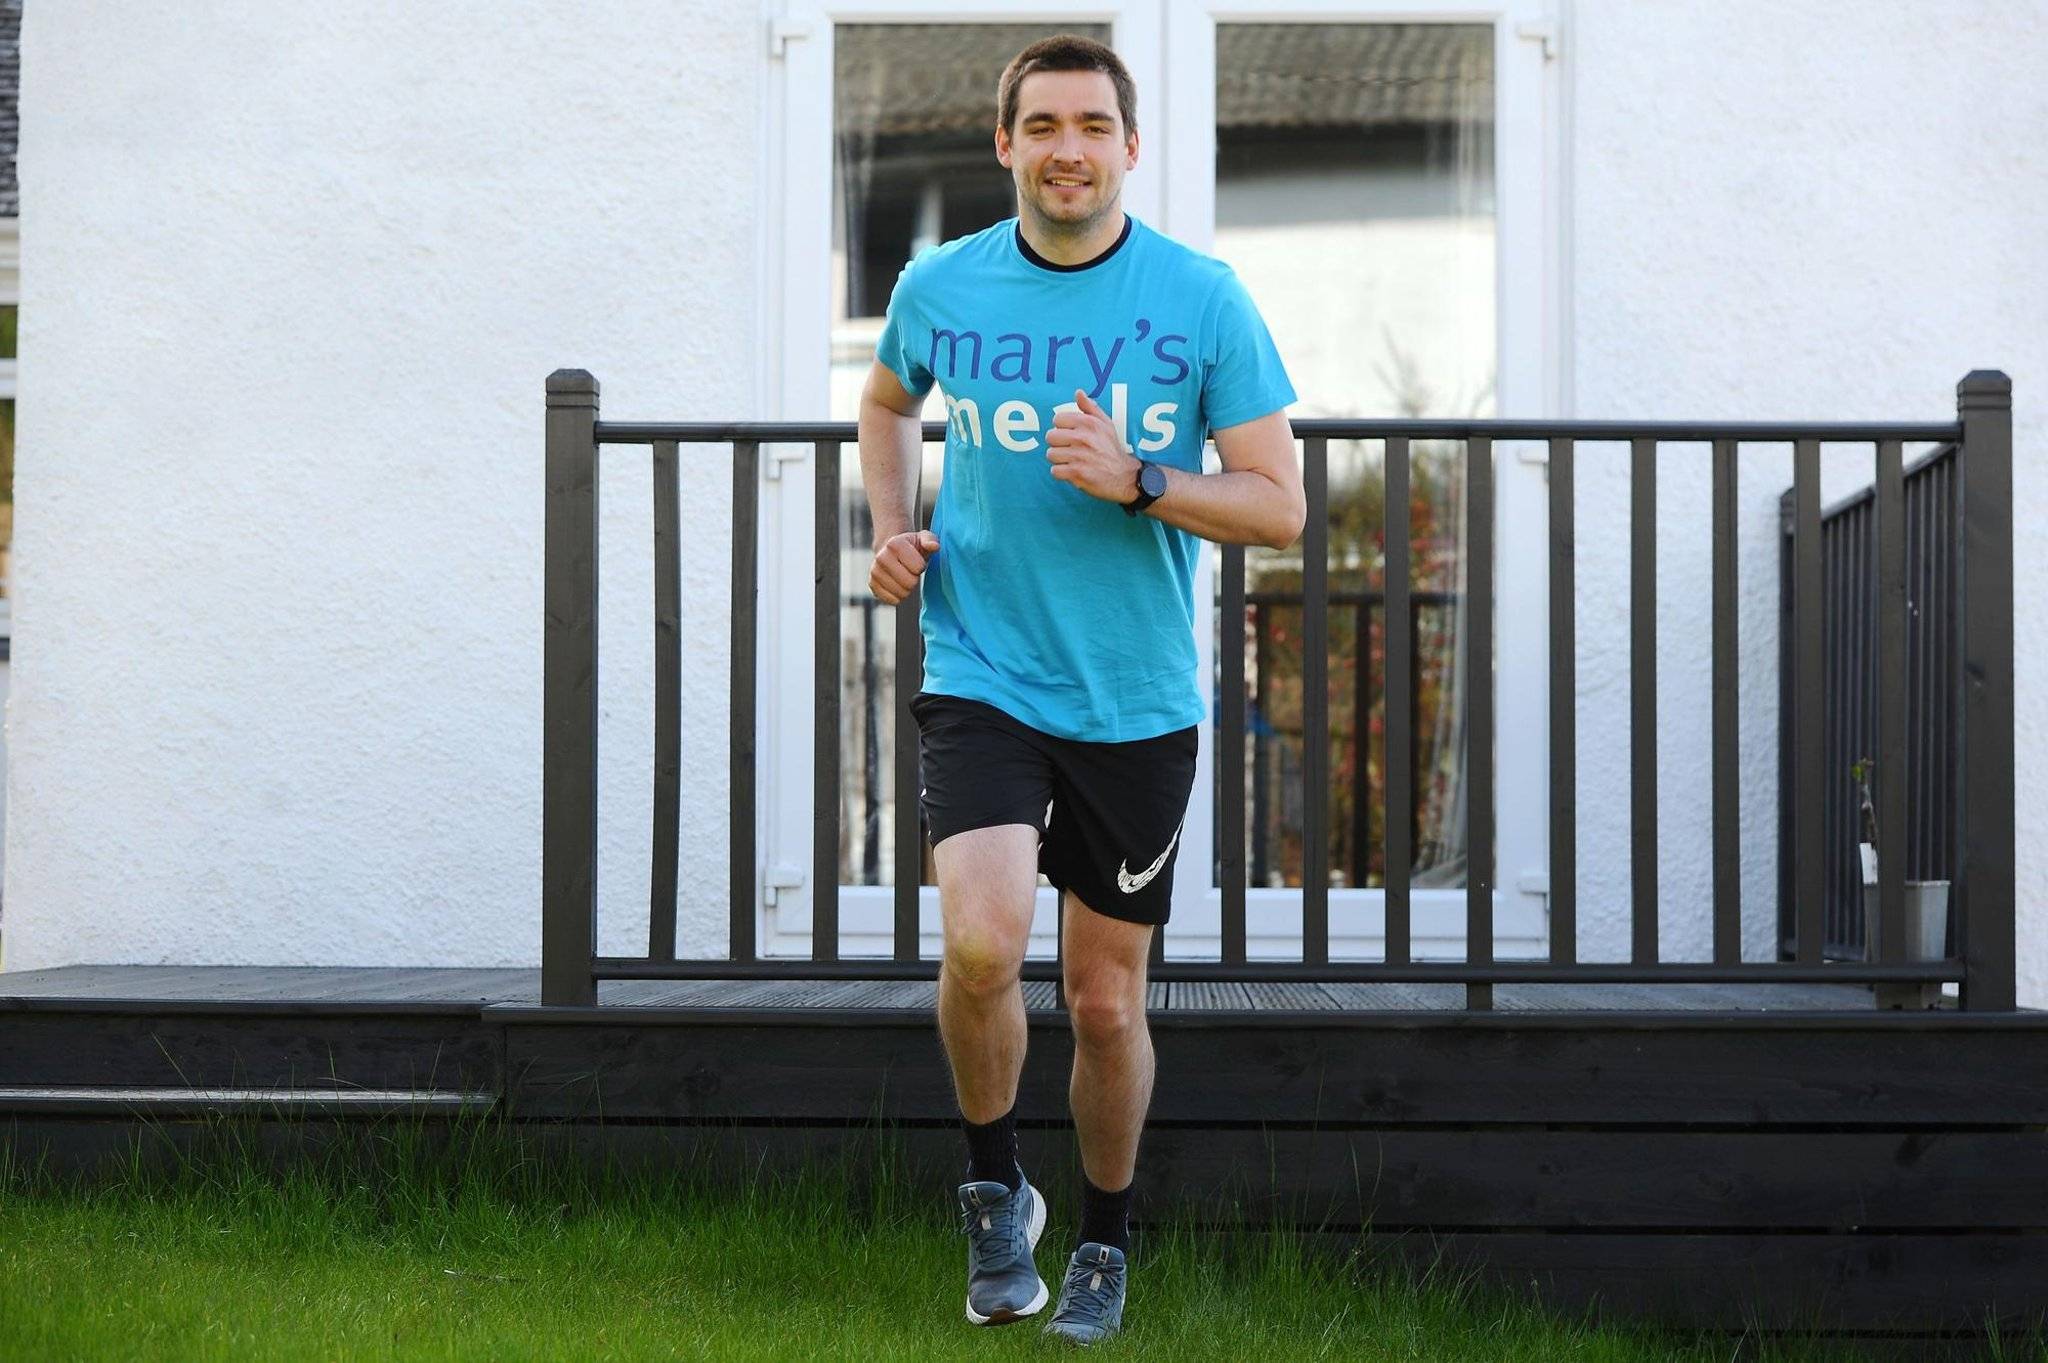 Wallacestone man running four miles every four hours over weekend to support Mary's Meals